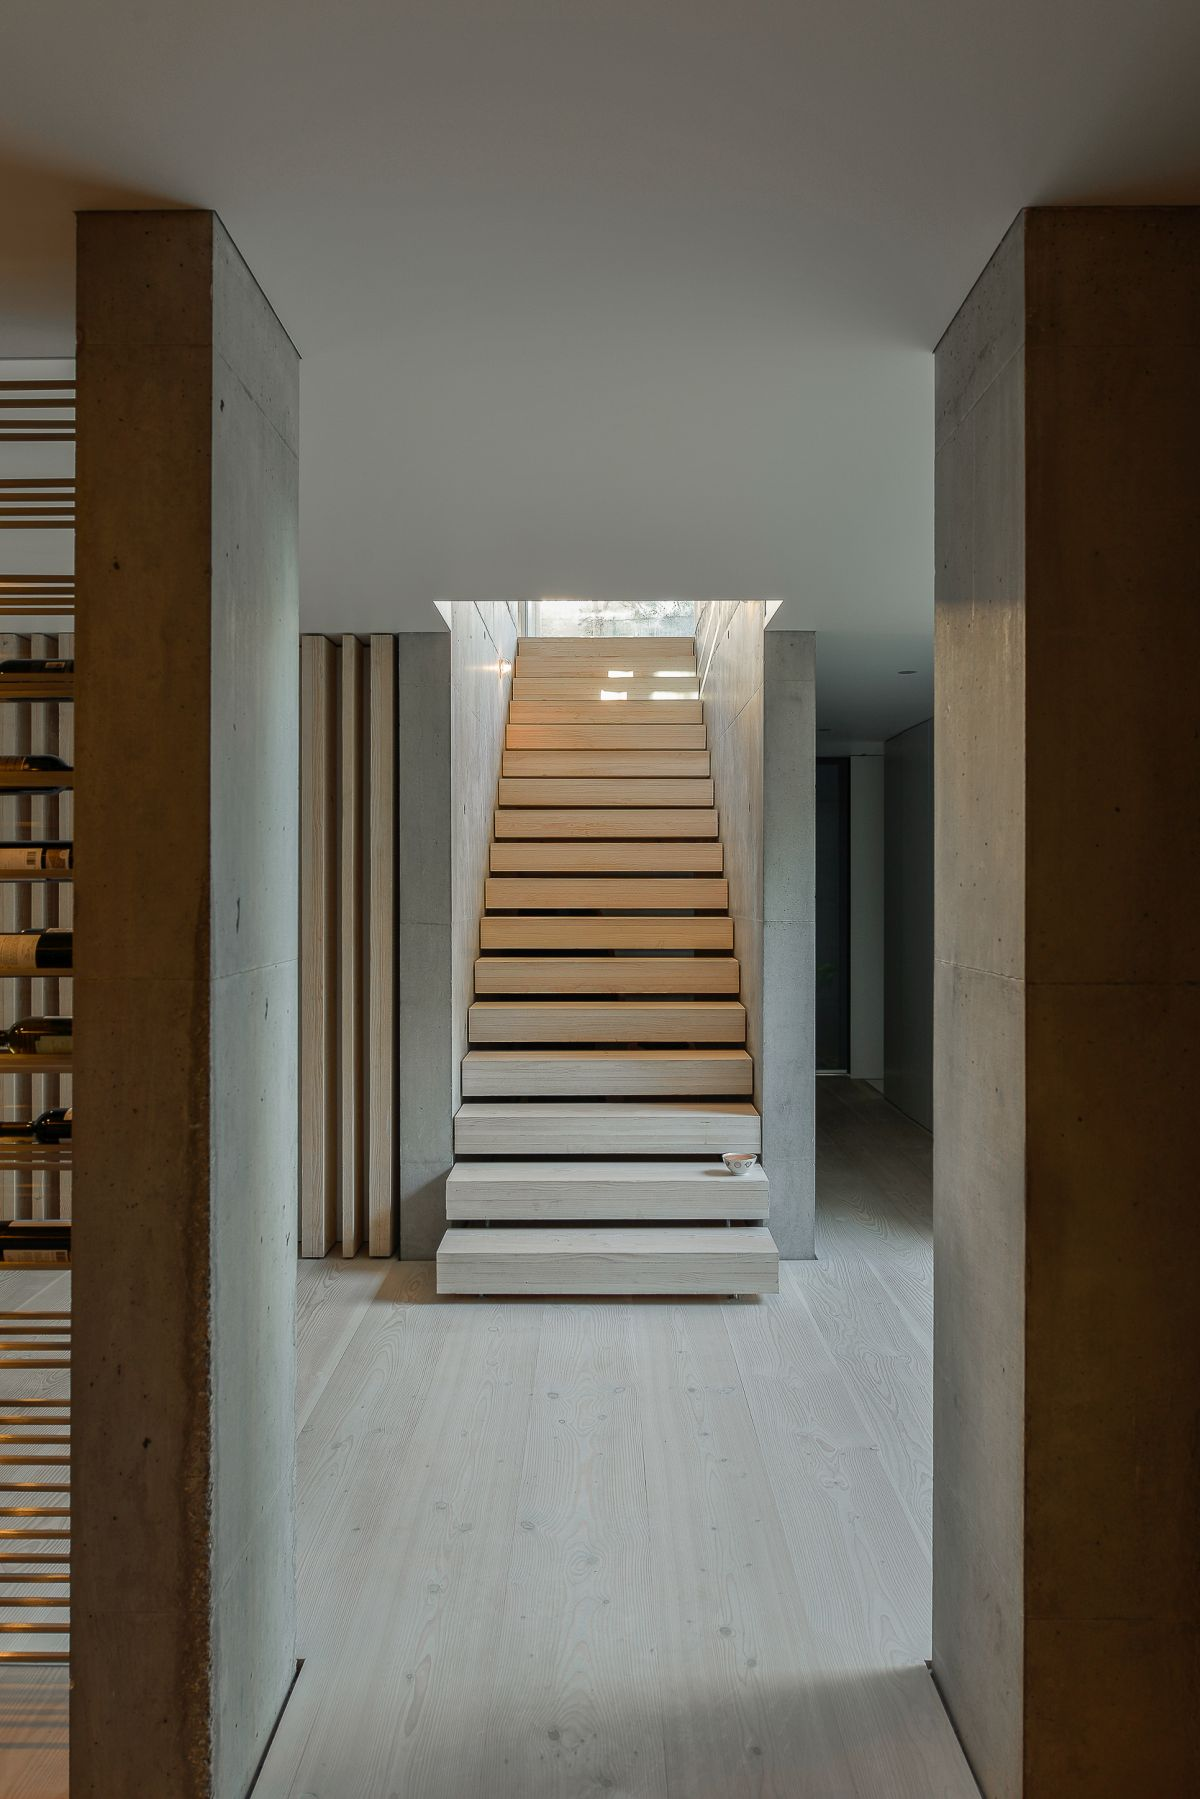 Linear and minimal, the stairway is an inconspicuous entry to the upstairs